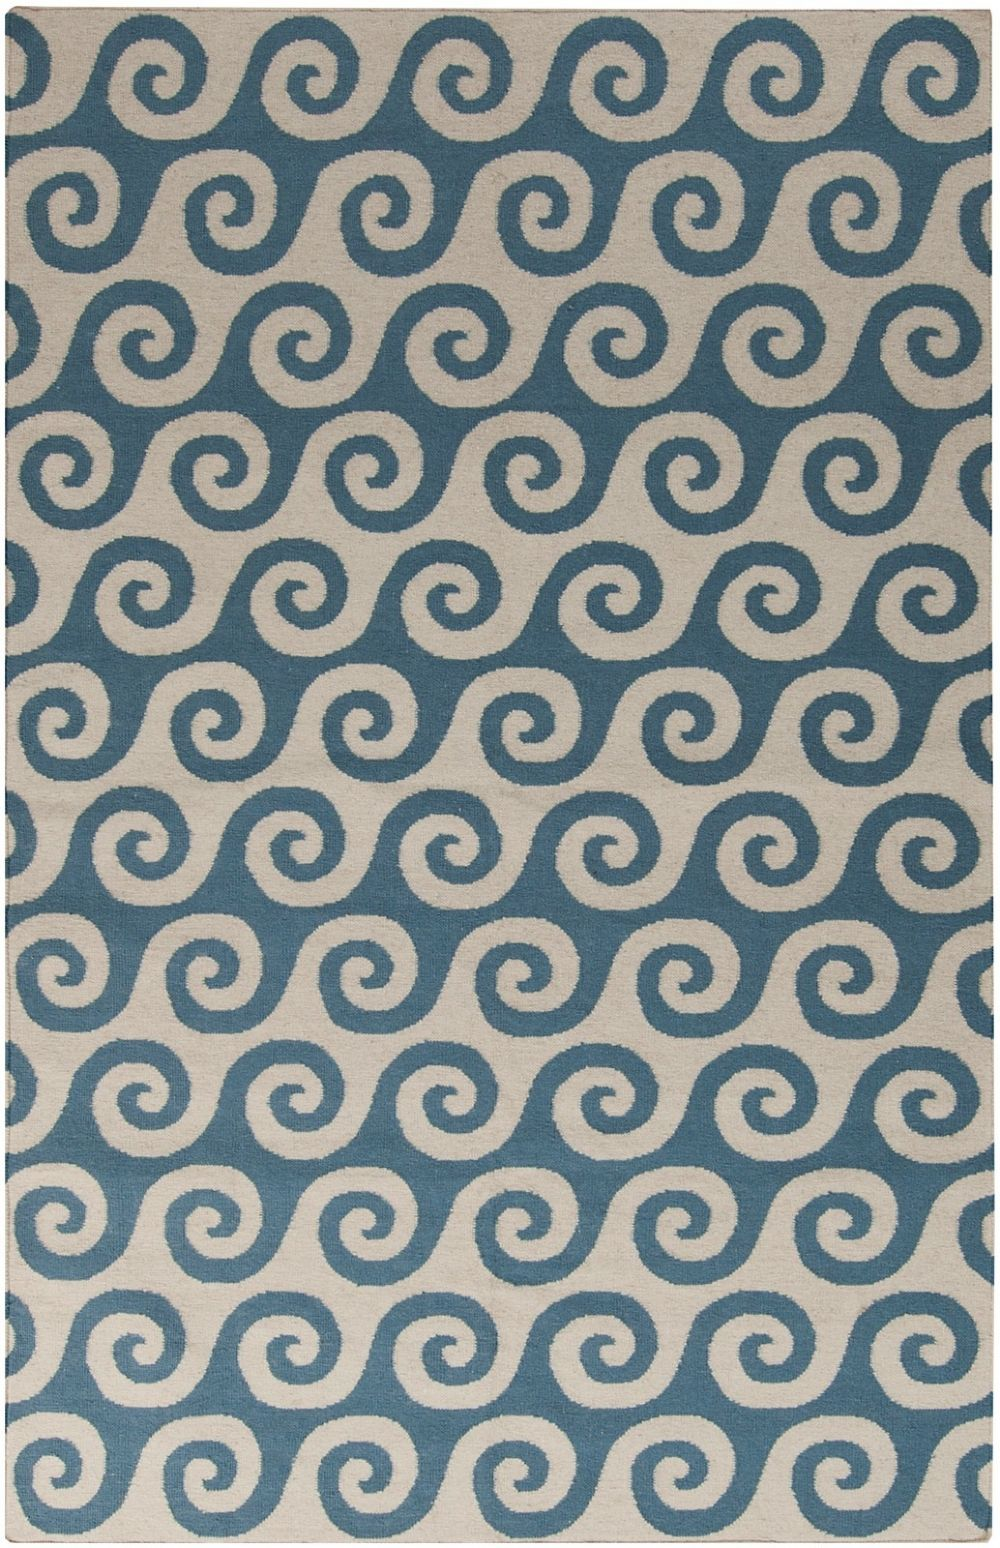 surya yacht club contemporary area rug collection